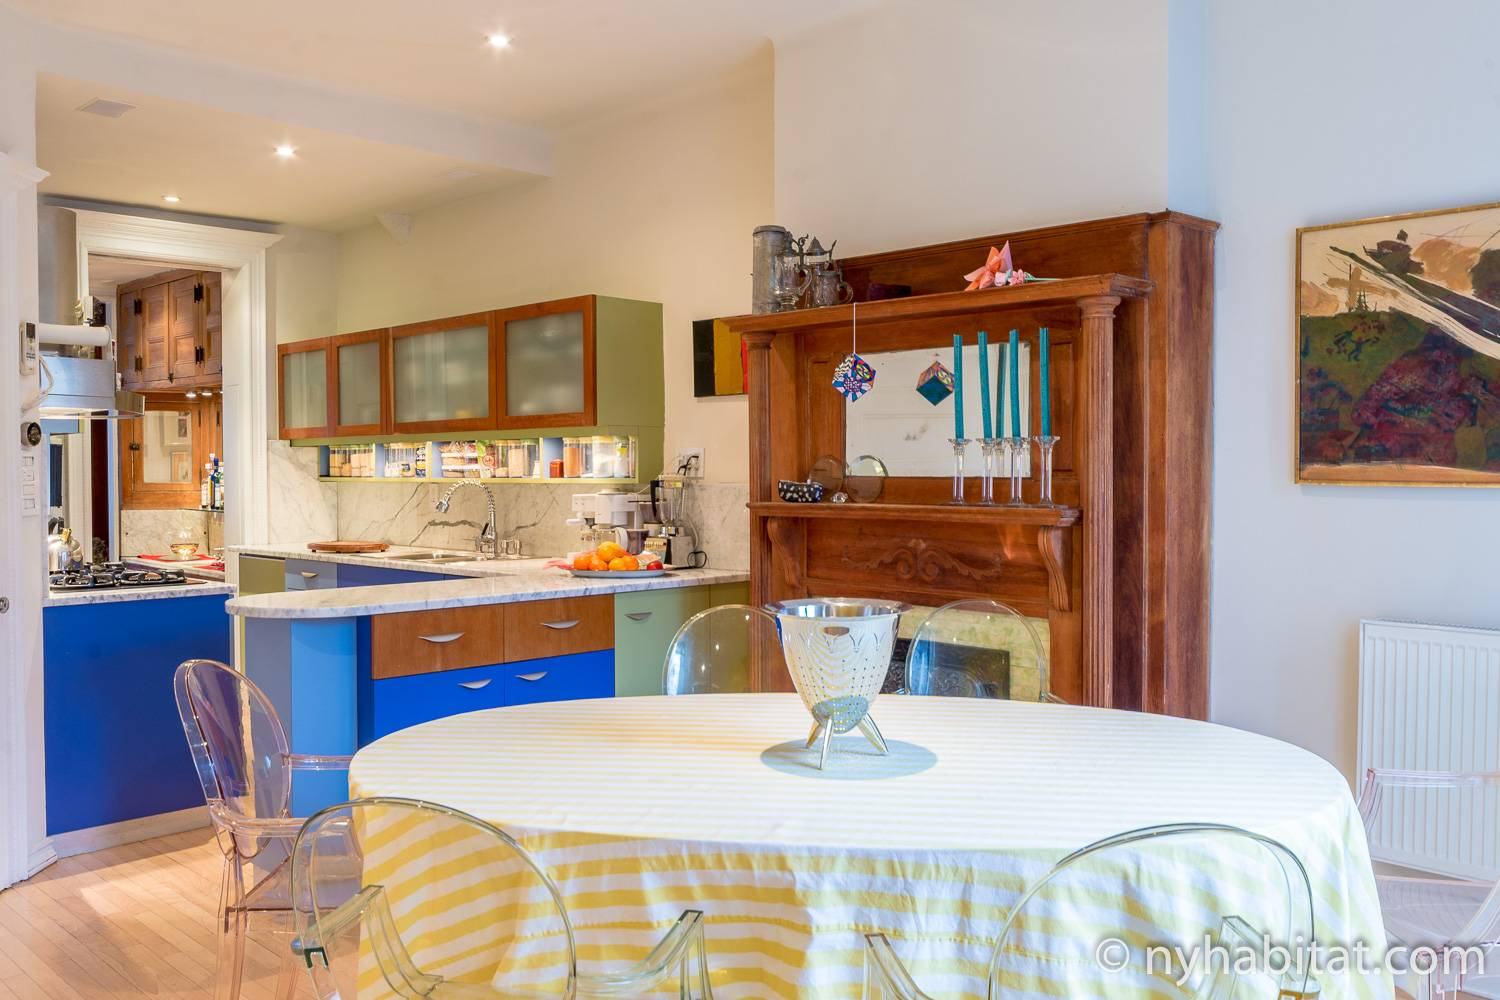 Image of the dining space of Harlem vacation rental NY-12274 next to the modern kitchen decorated with accents of blue and yellow.